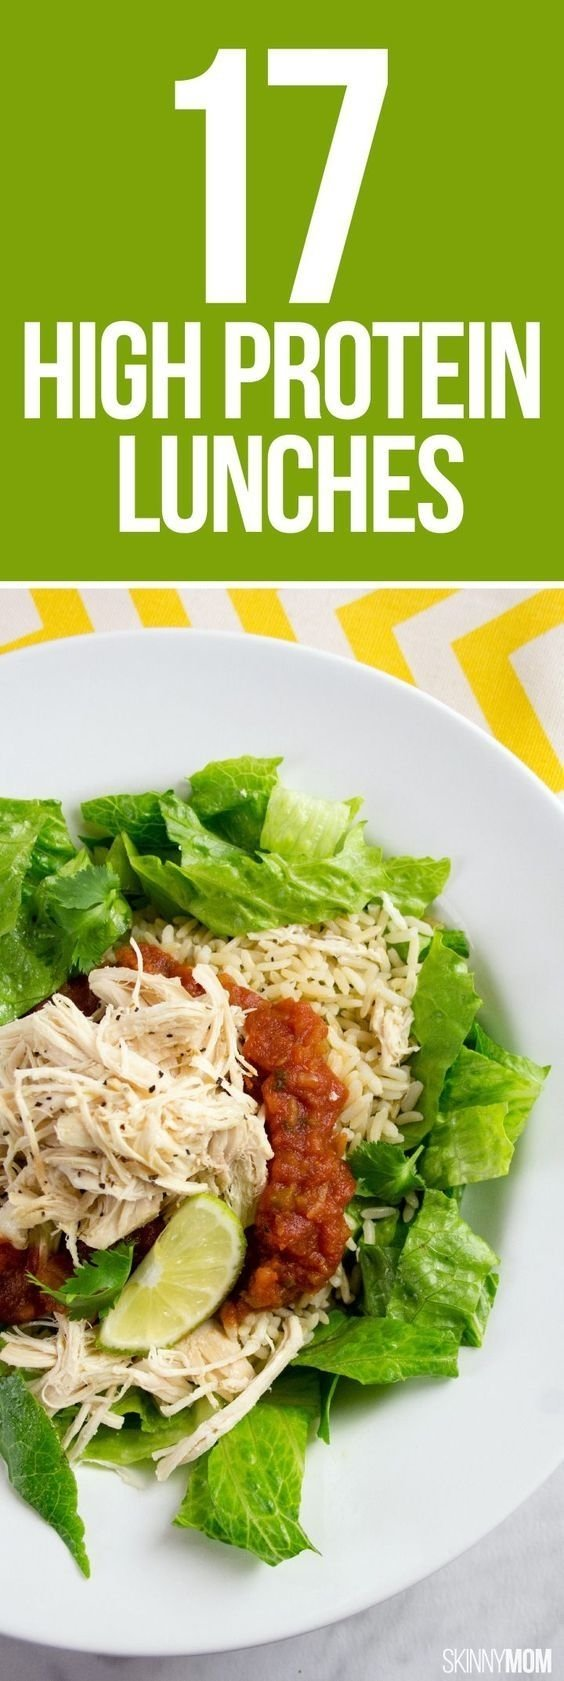 10 Unique High Protein Lunch Ideas For Work 17 high protein lunches to nix your afternoon hunger pangs lunches